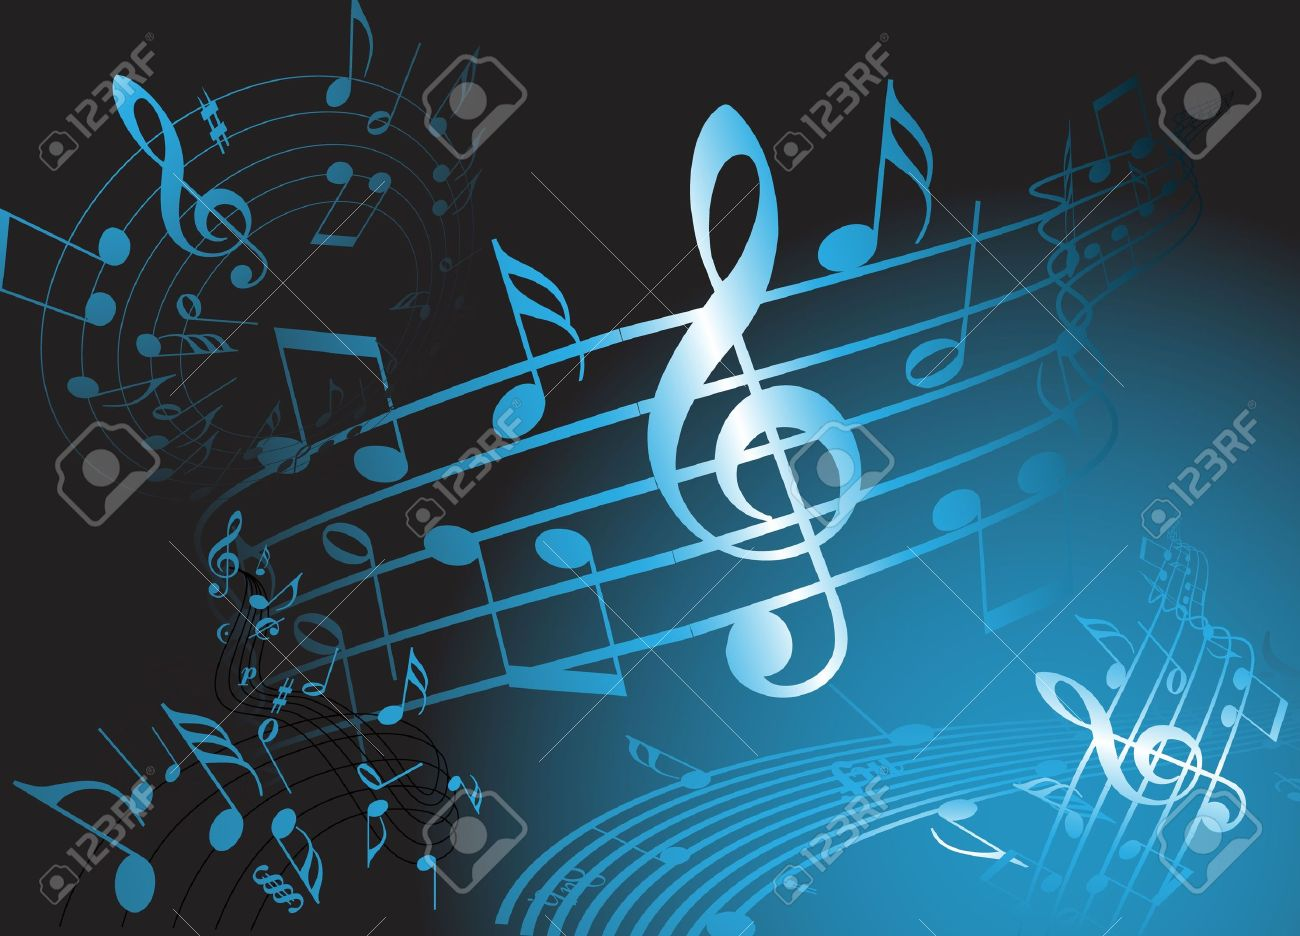 Blue music theme - abstract musical background